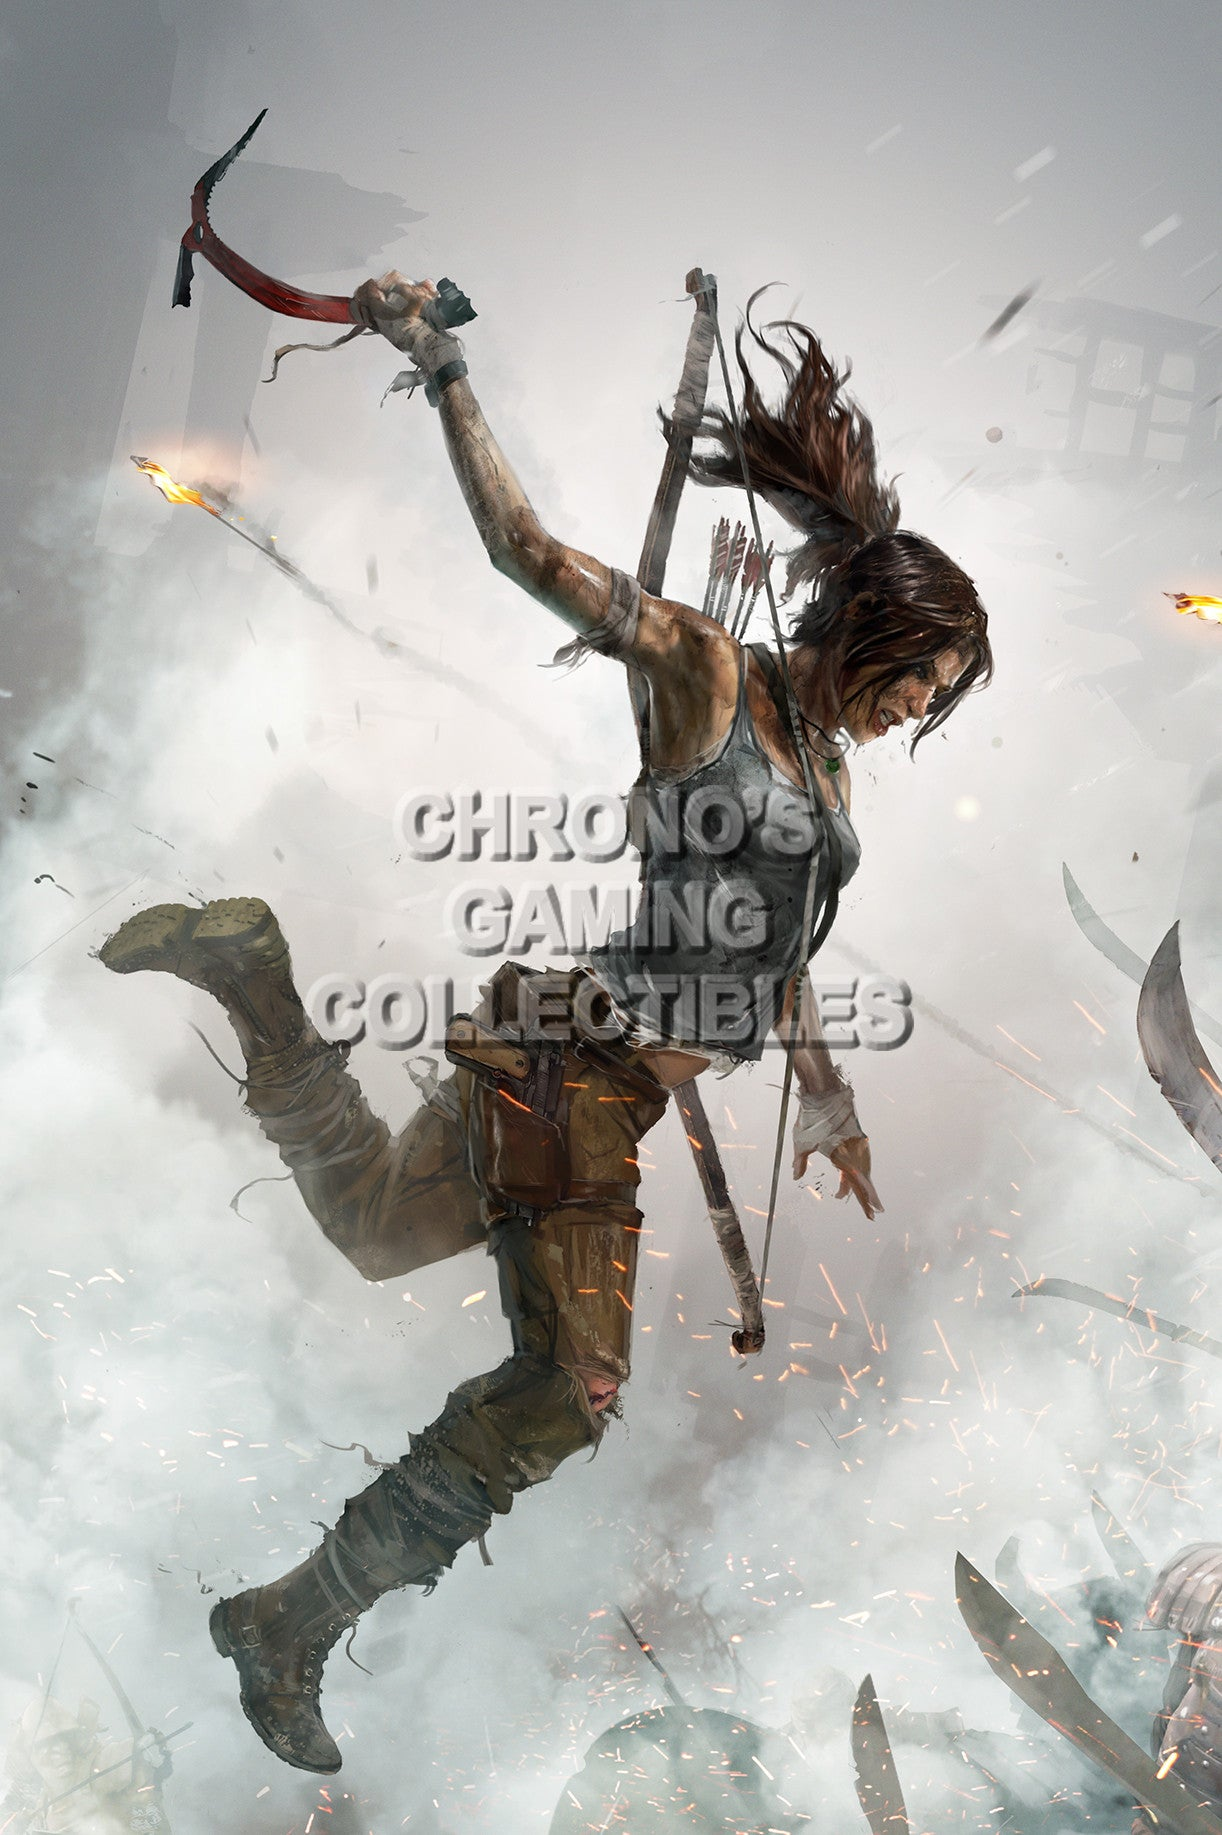 Tomb Raider Lara Croft Xbox One PS3 PS4 PC Game Giant Poster